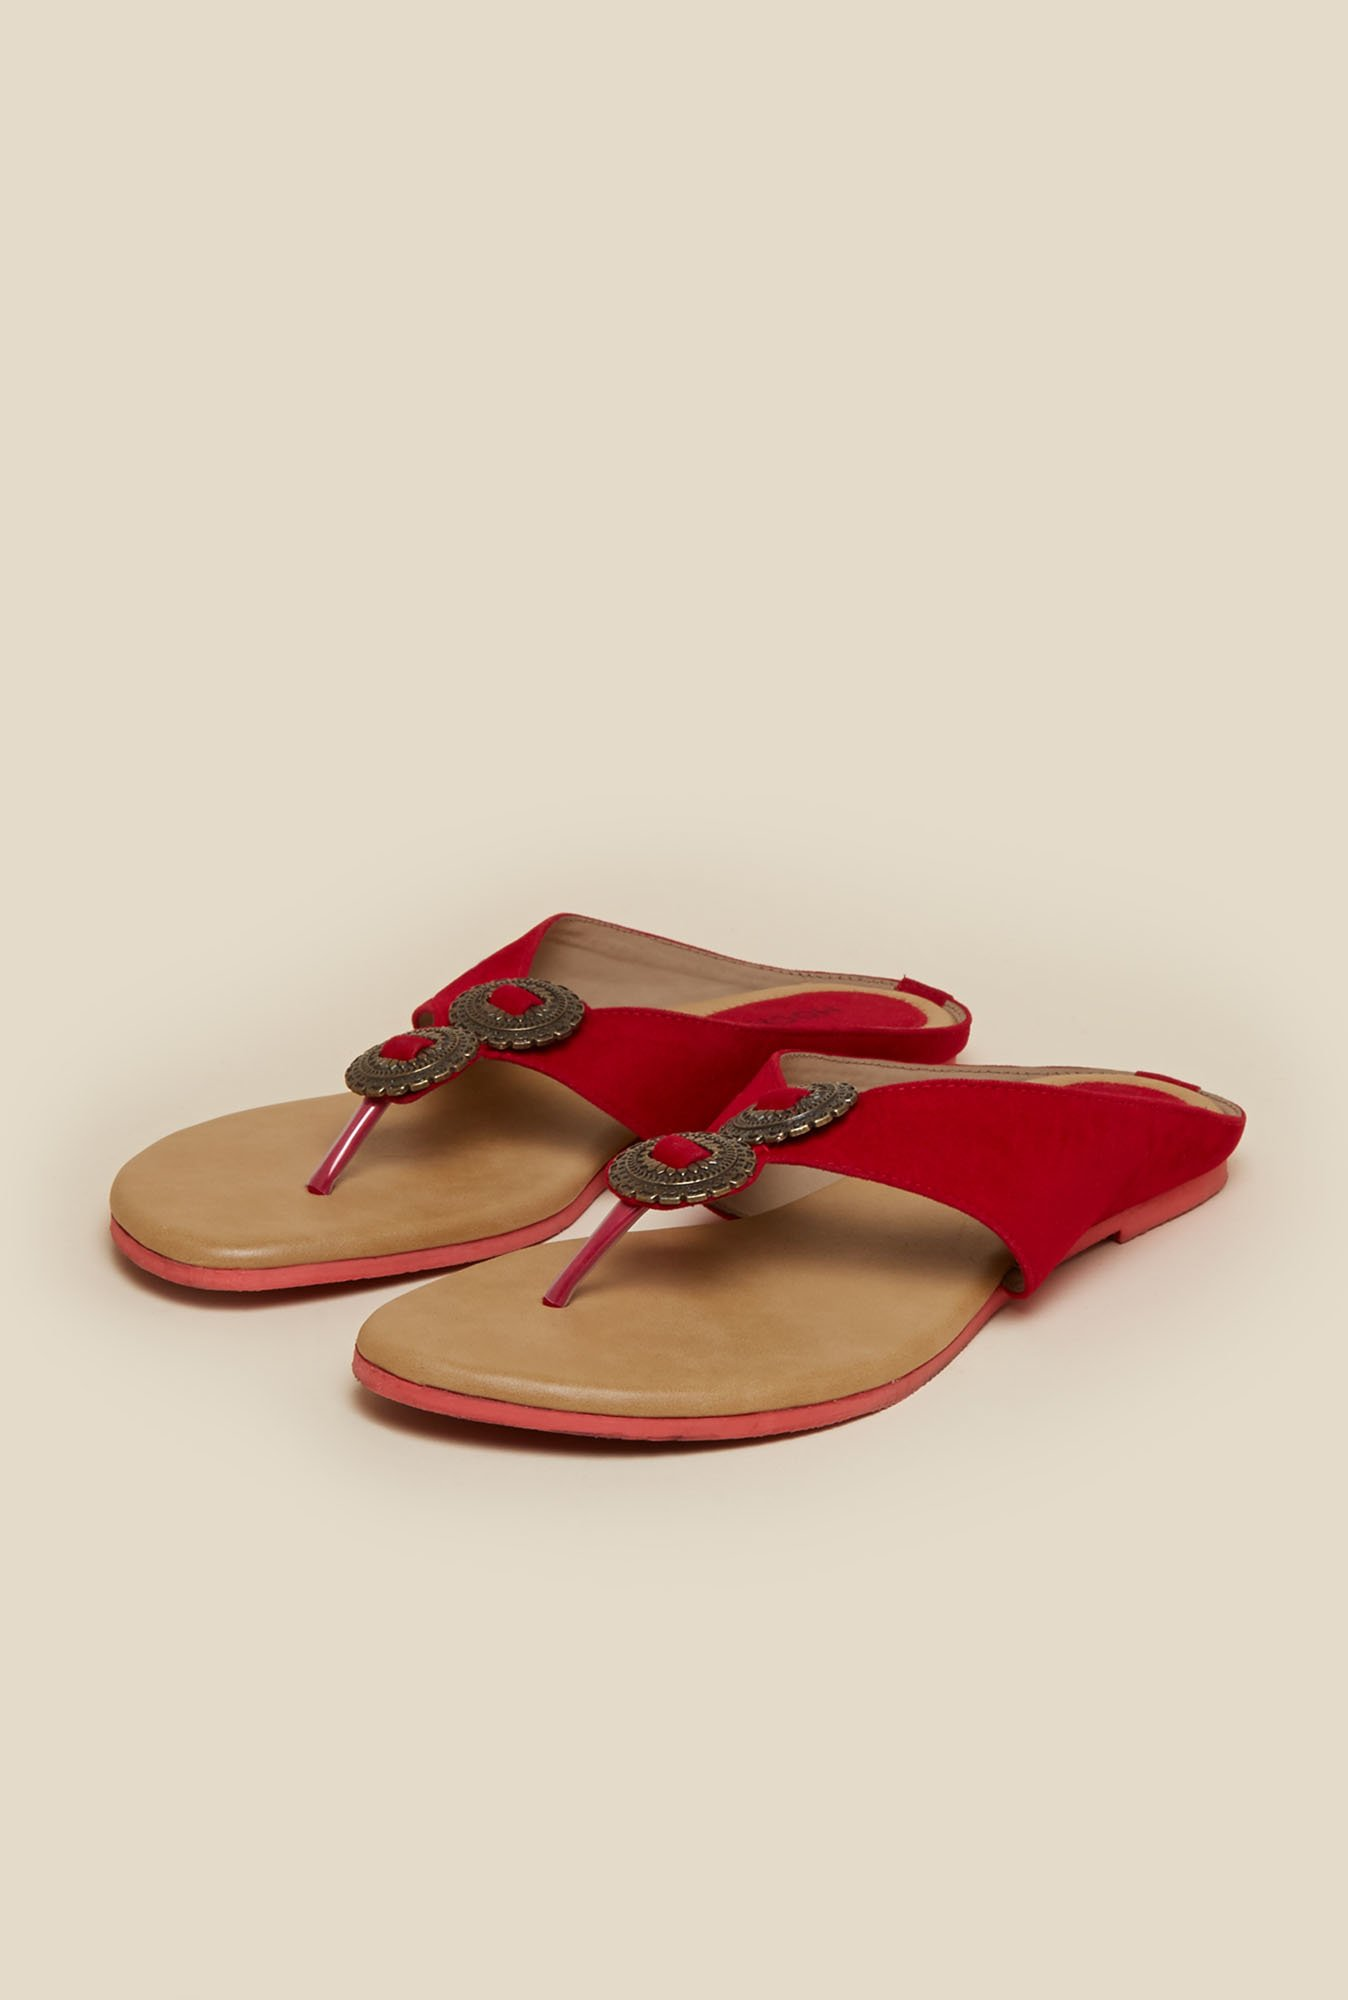 Mochi Scarlet Red Flat Thong Sandals